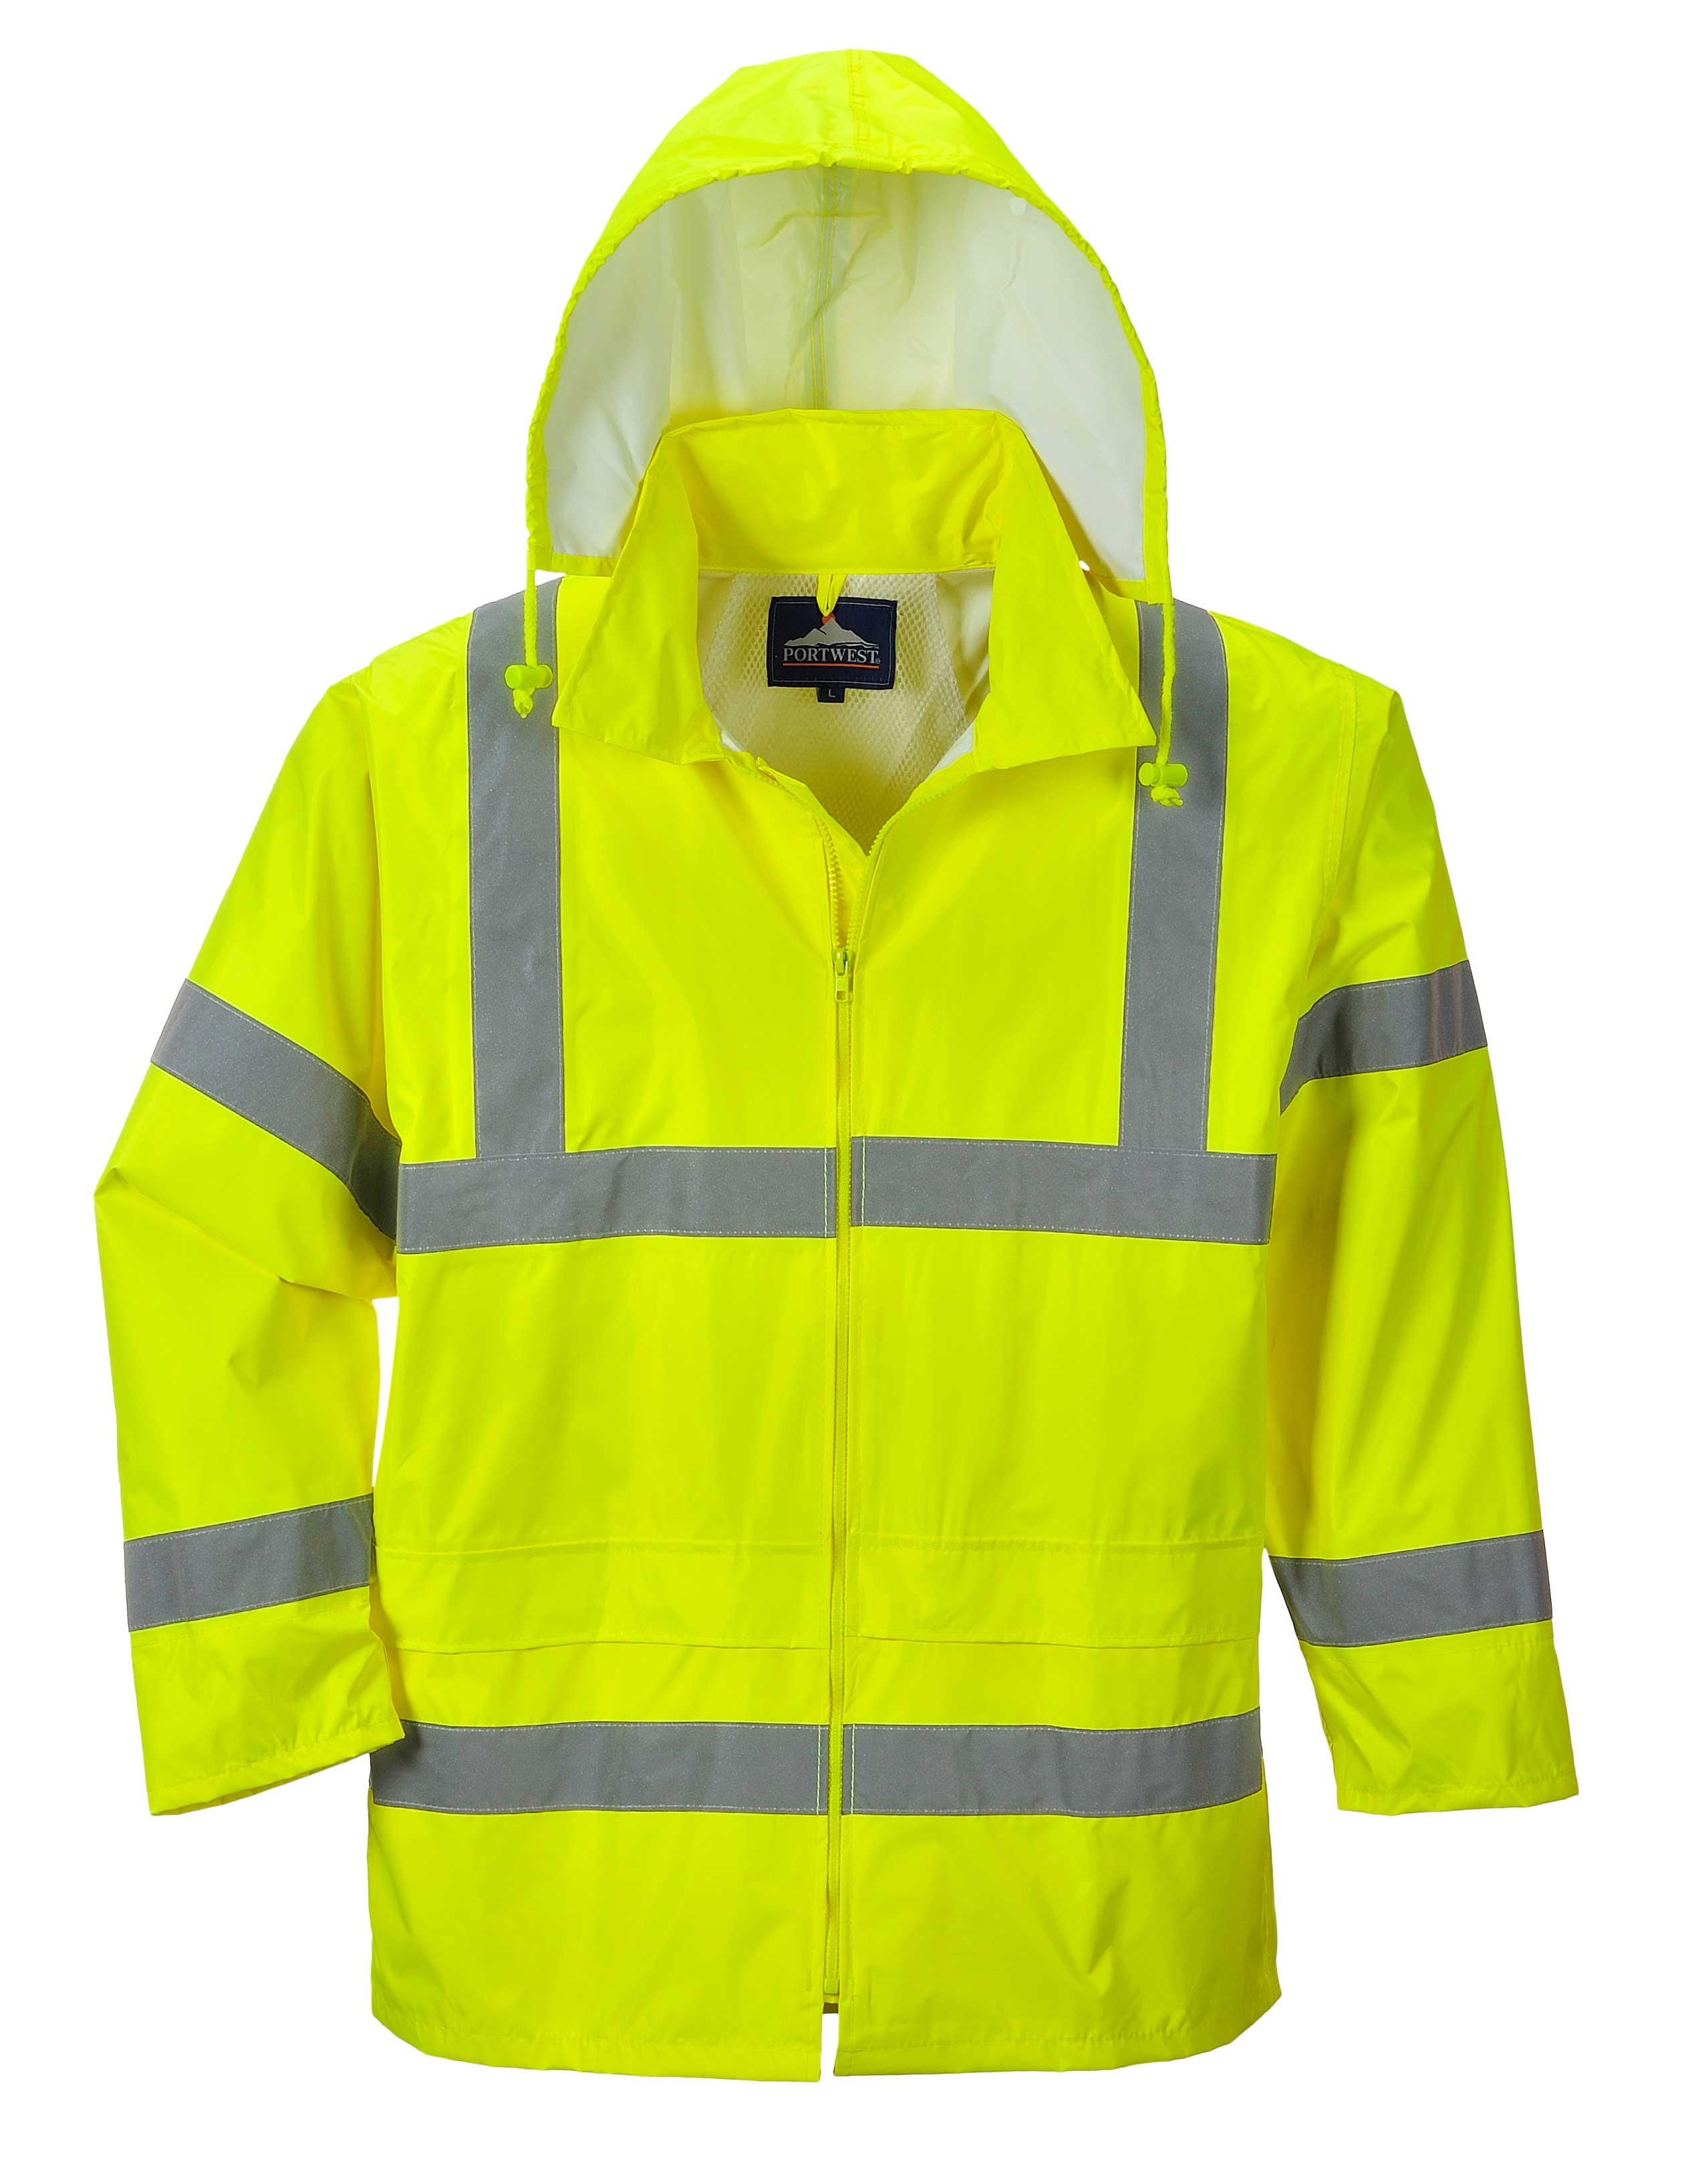 Northrock Safety Hi Vis Rain Jacket Hi Vis Rain Jacket